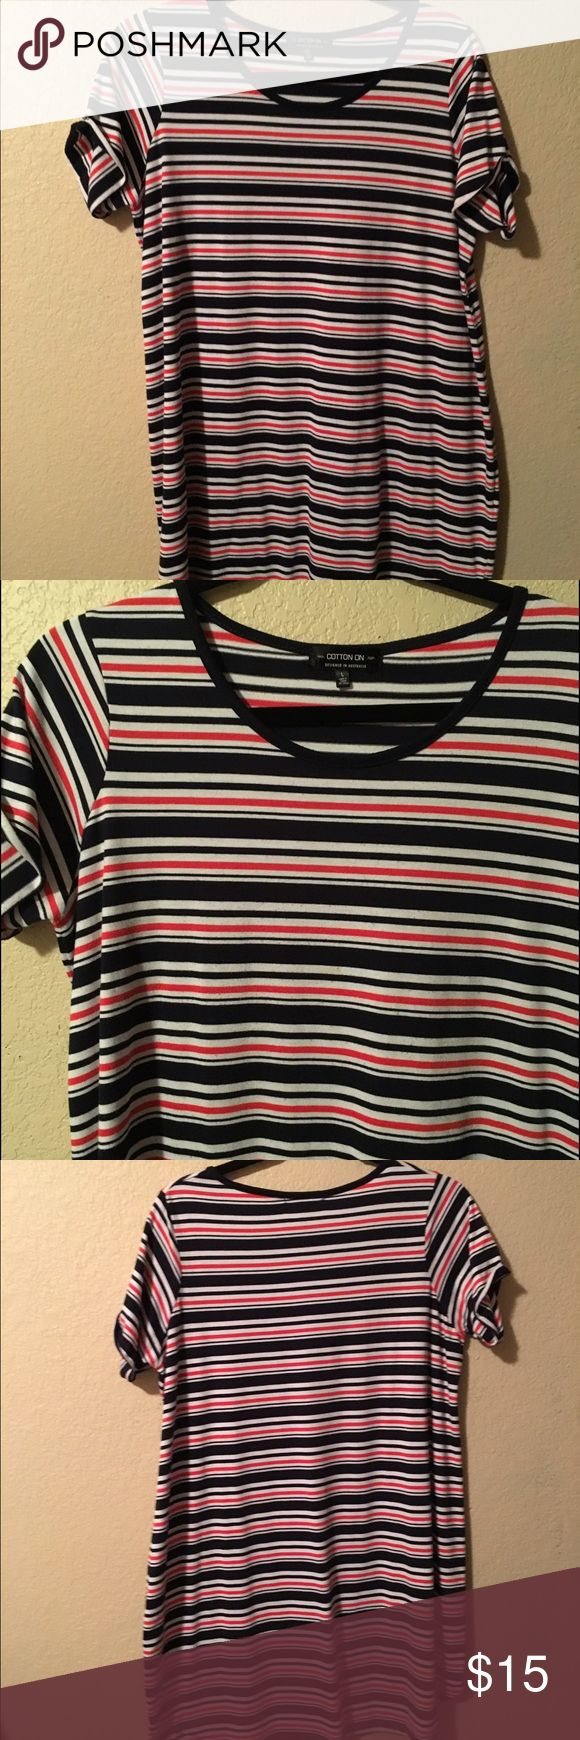 Cotton on striped t shirt dress Cotton on red white and blue t shirt dress Cotton On Dresses